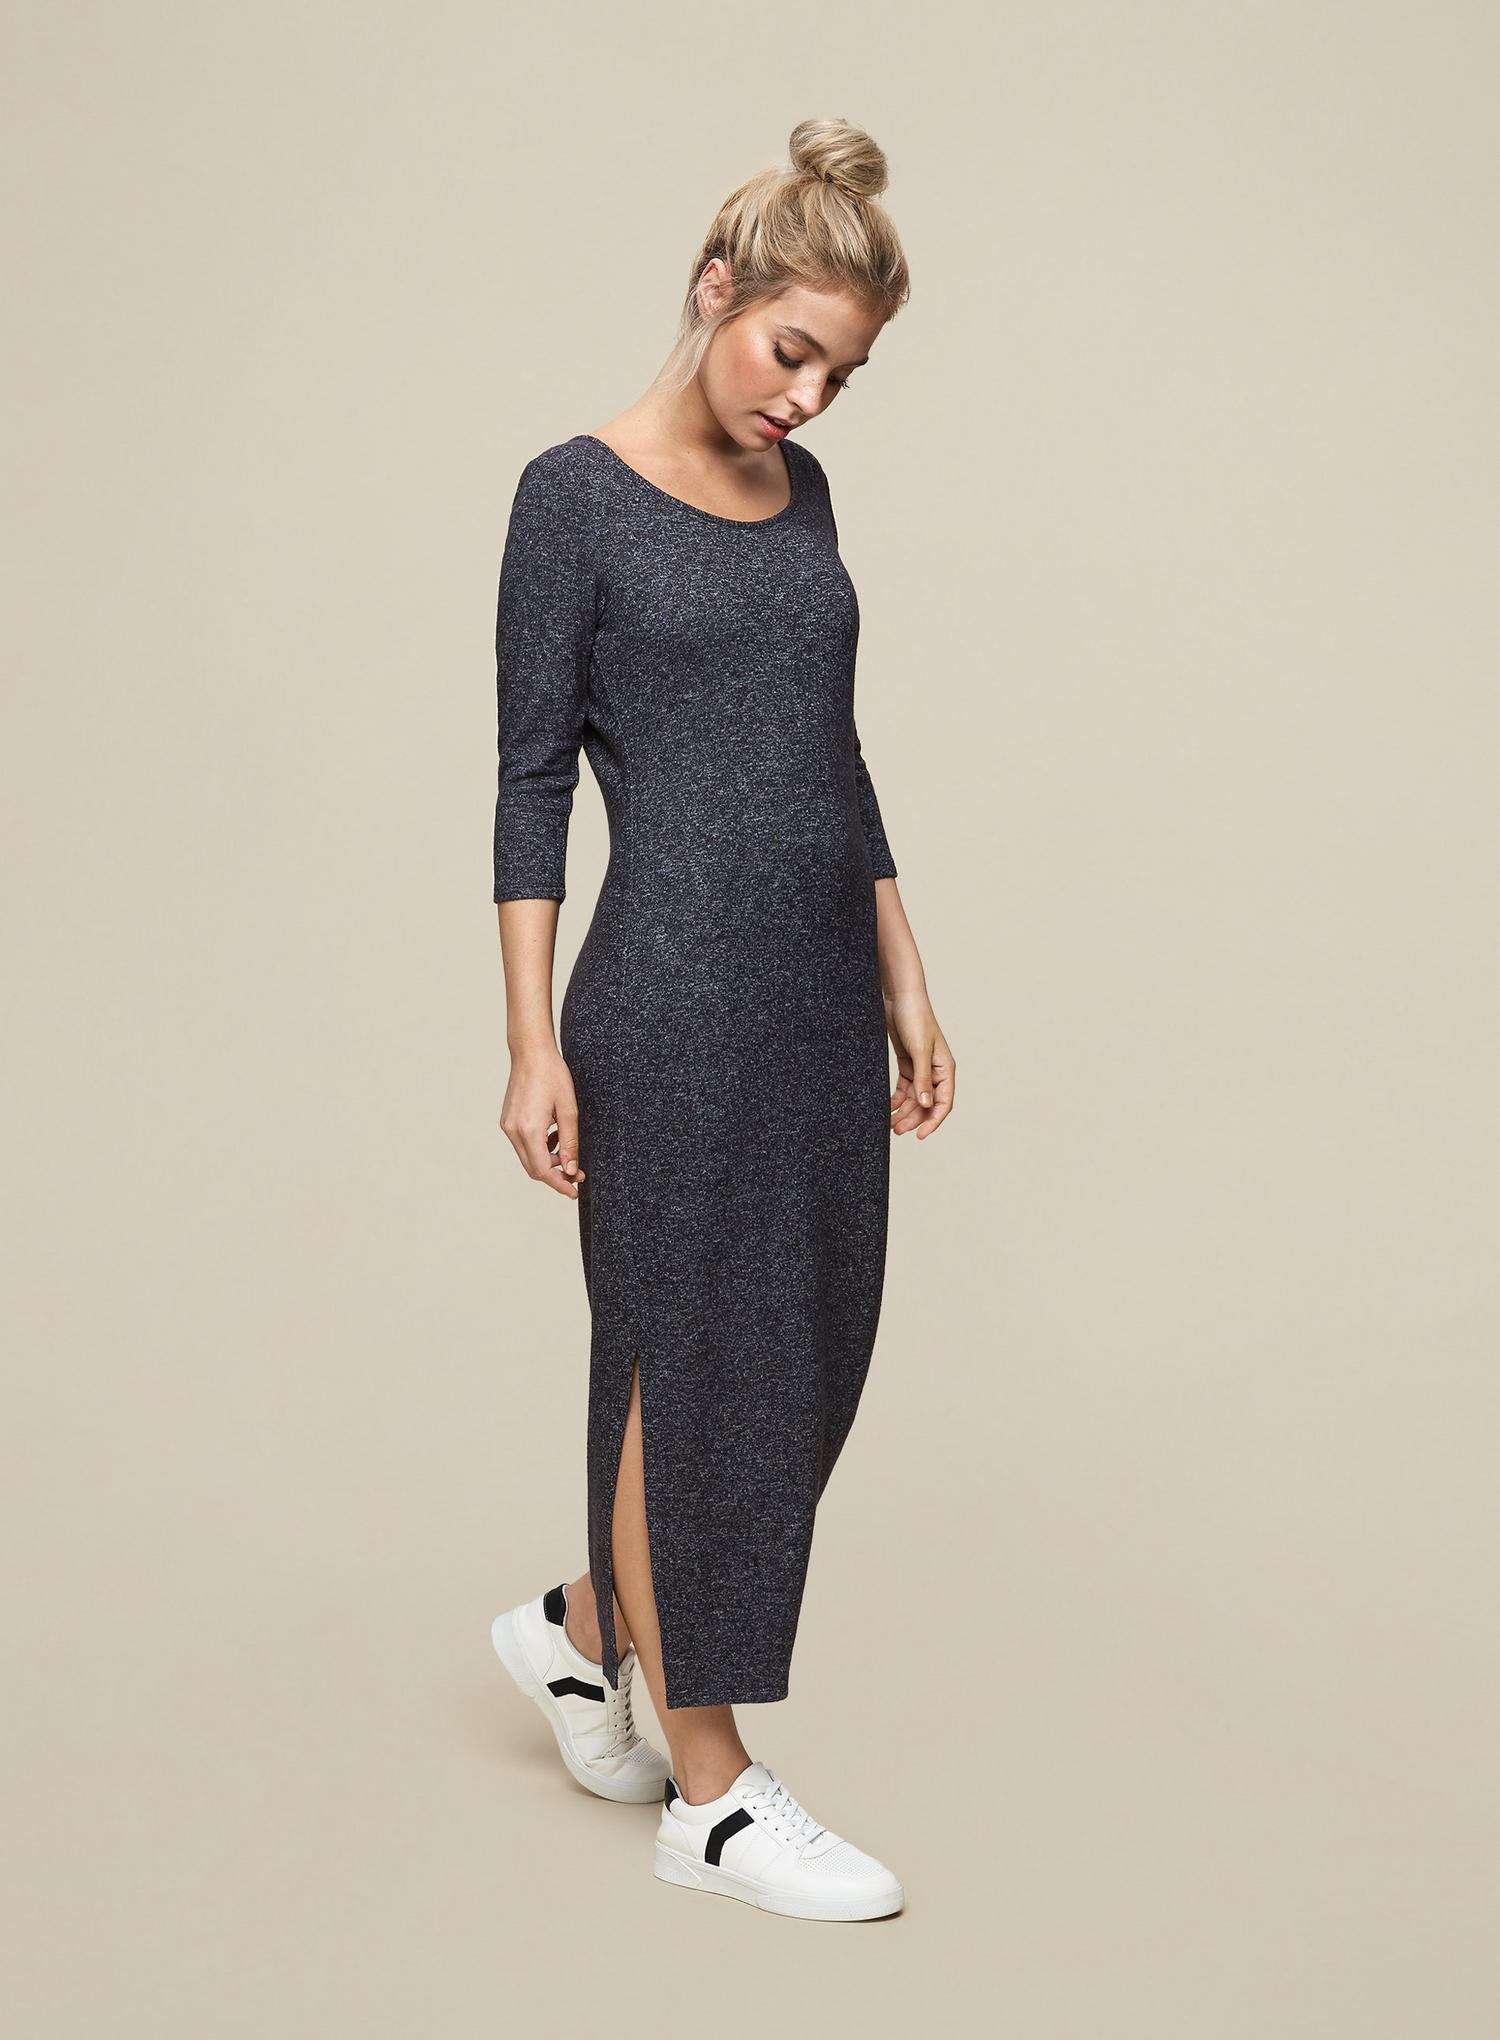 131 Petite Charcoal 3 Quarter Sleeve Brushed Midi  image number 1